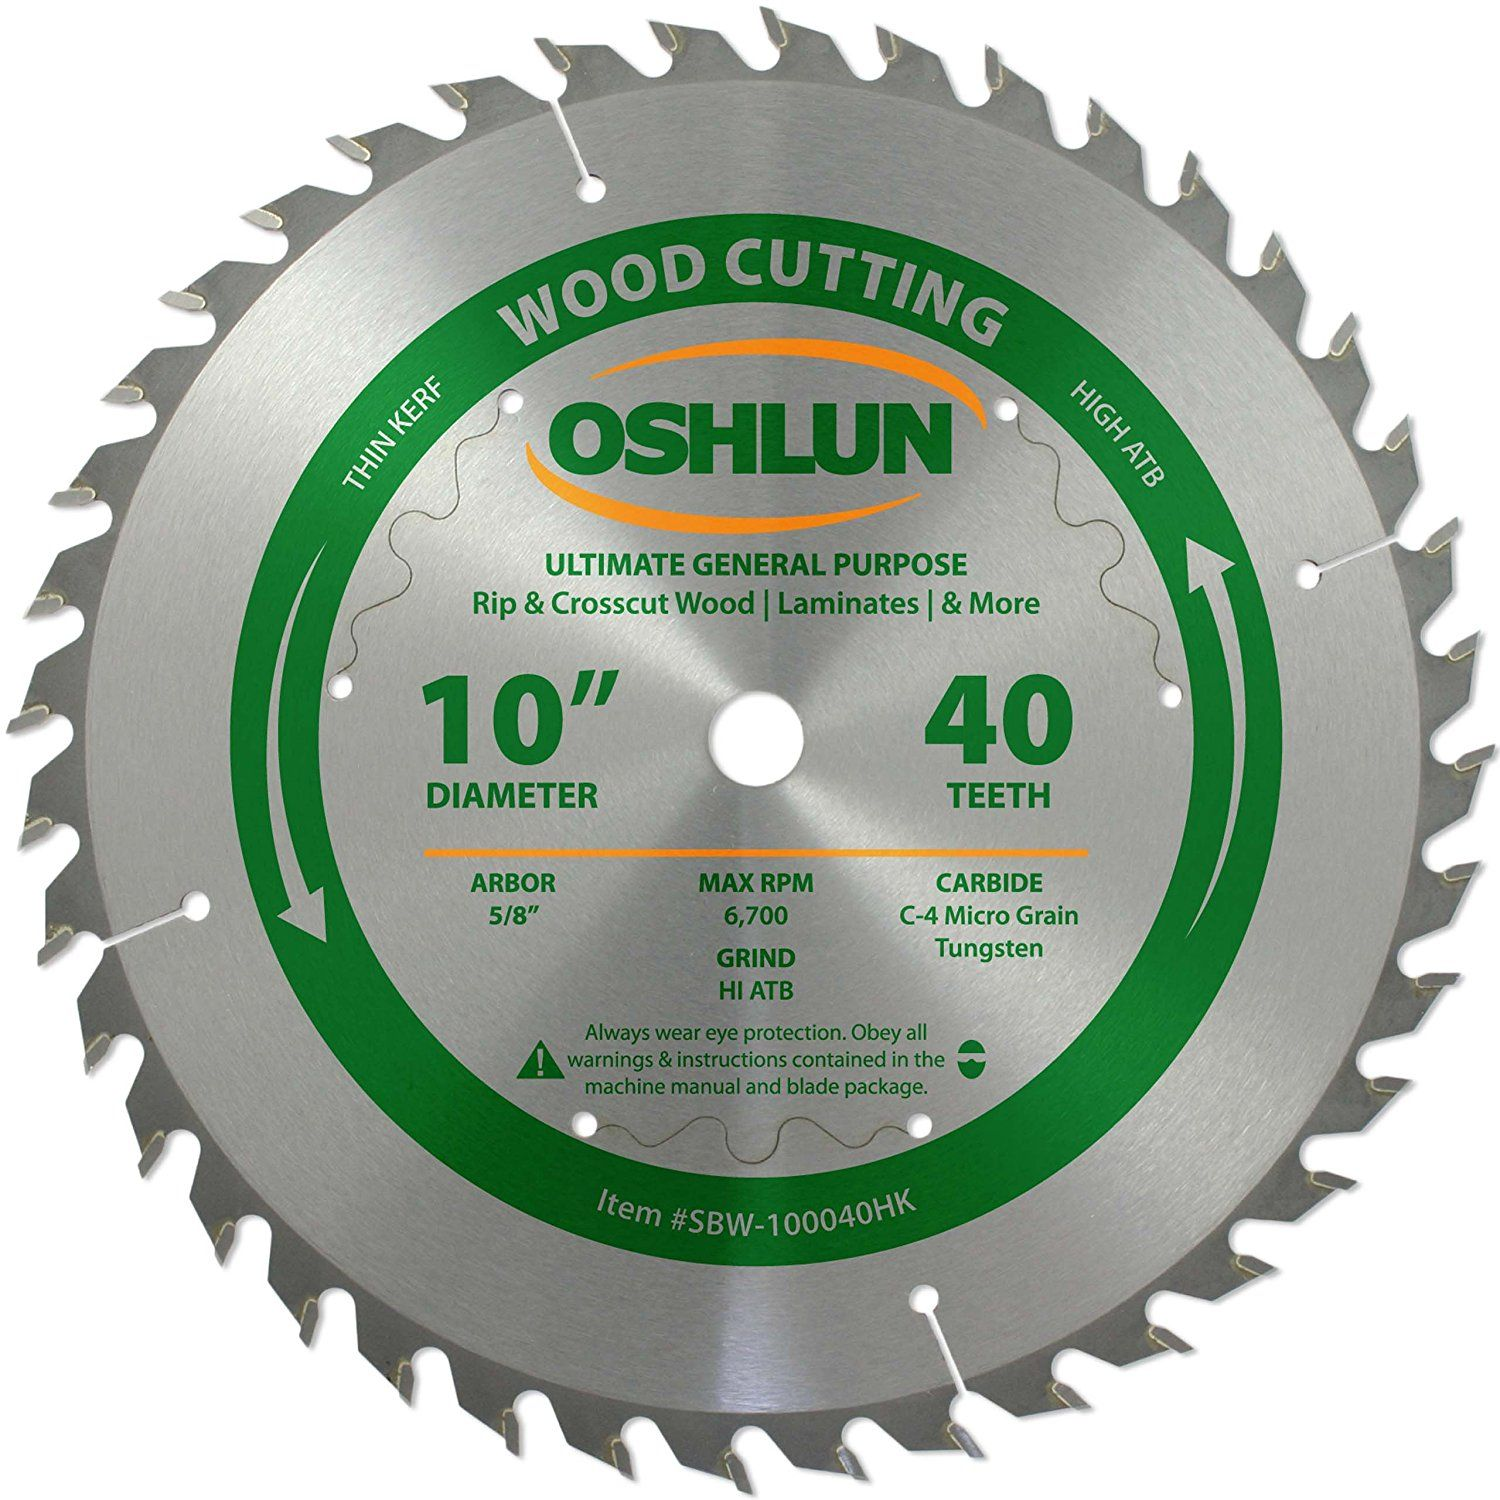 Idea By Safecon Group On Wood Blades Table Saw Blades Circular Saw Blades Saw Blade